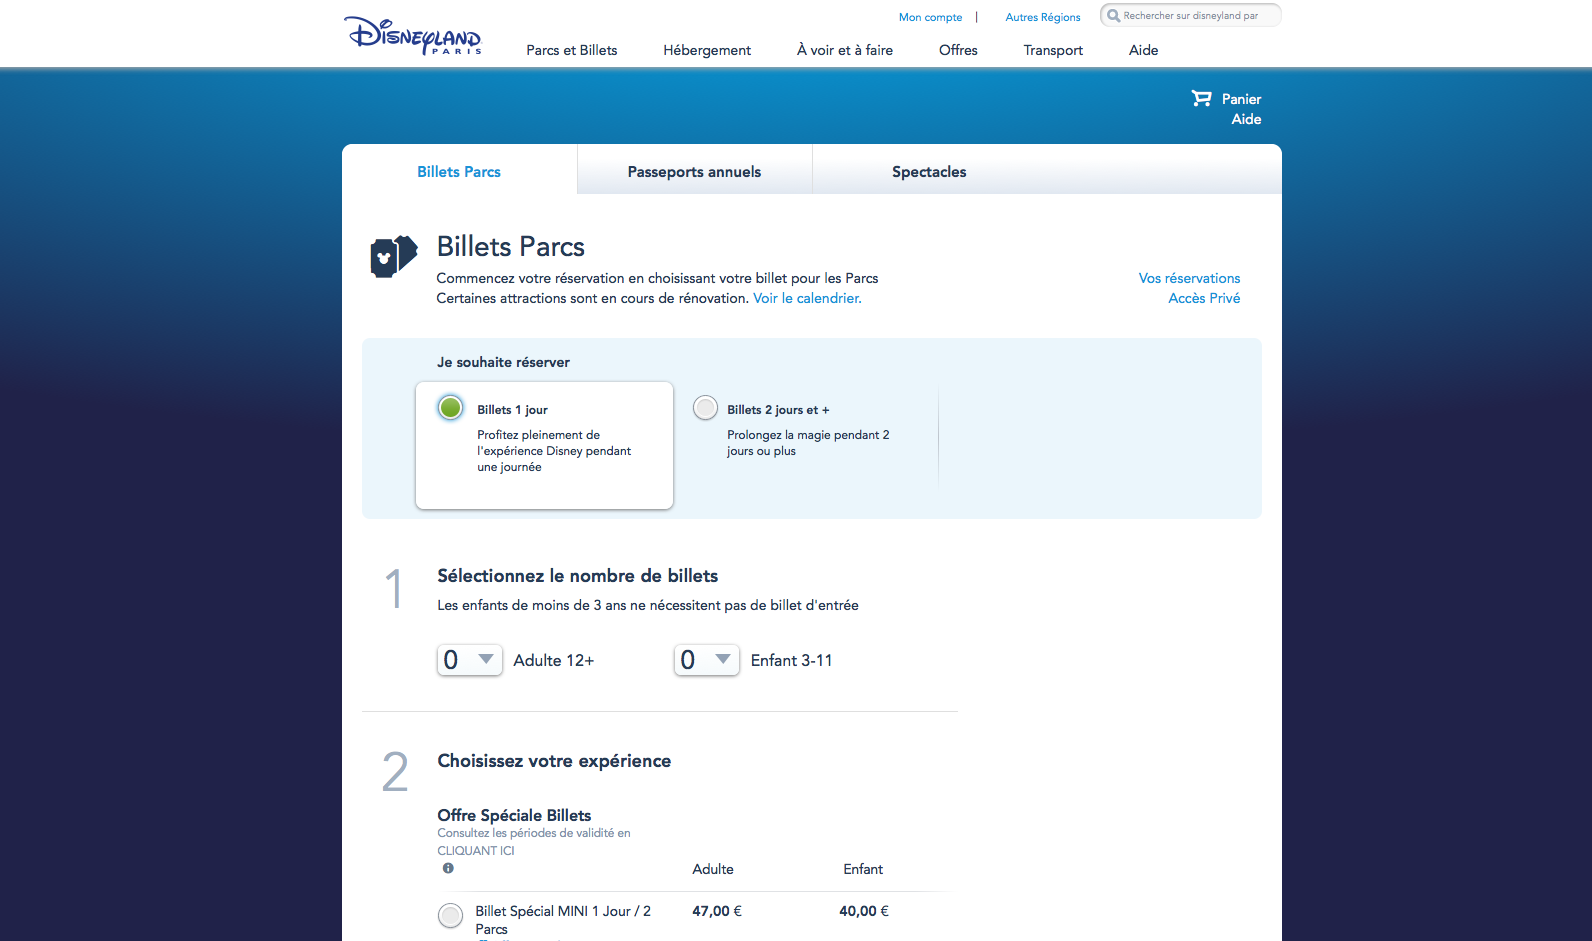 paris disneyland paris french dating services Isis planned to attack disneyland paris, the champs-elysees christmas market, a metro station, cafes and a police hq next week, cops reveal suspects had made internet searches on several.